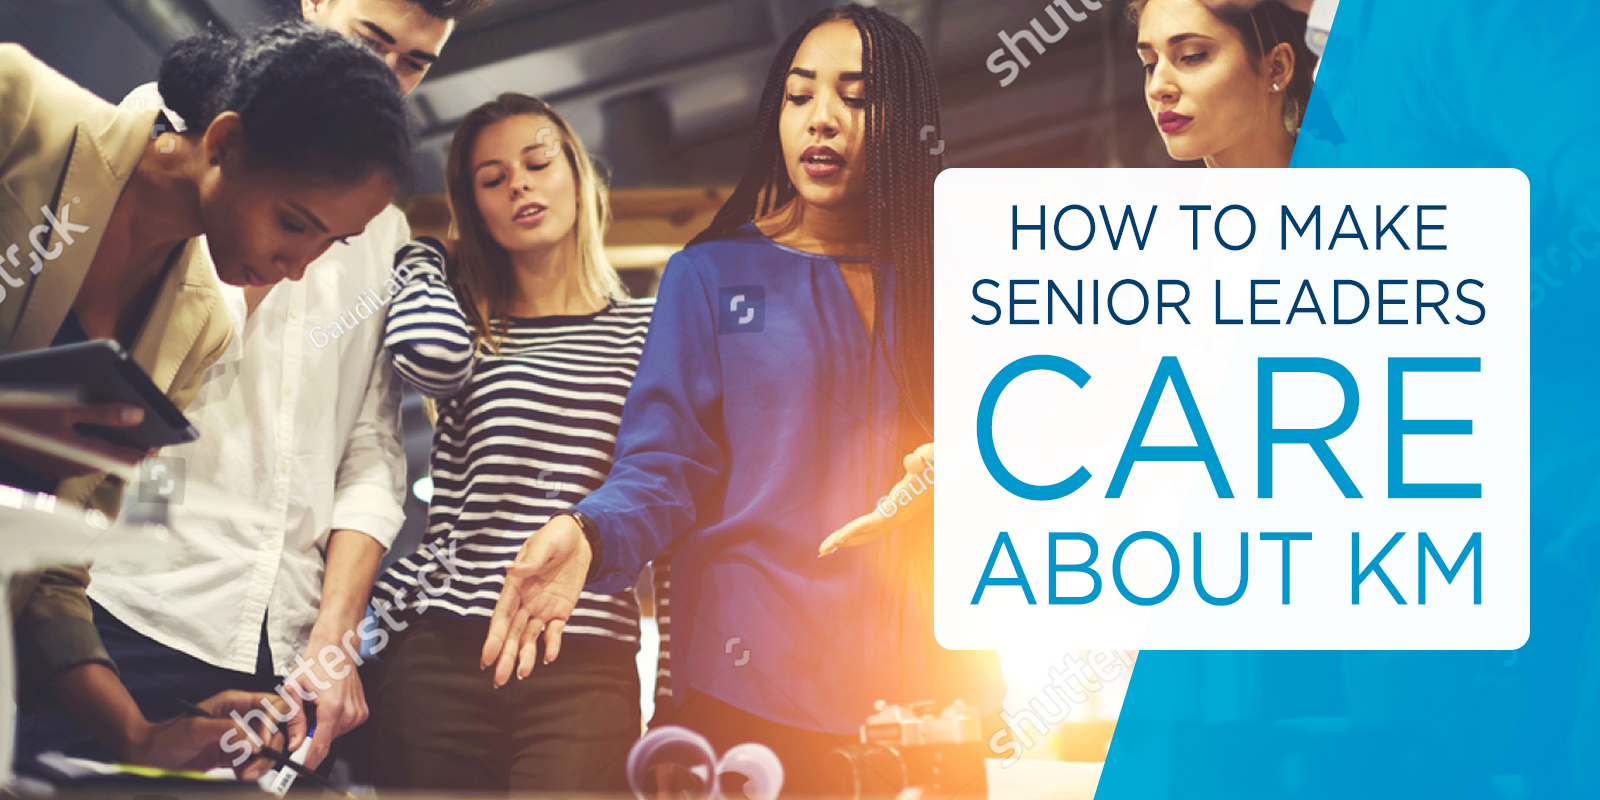 How to get senior leaders to care about KM